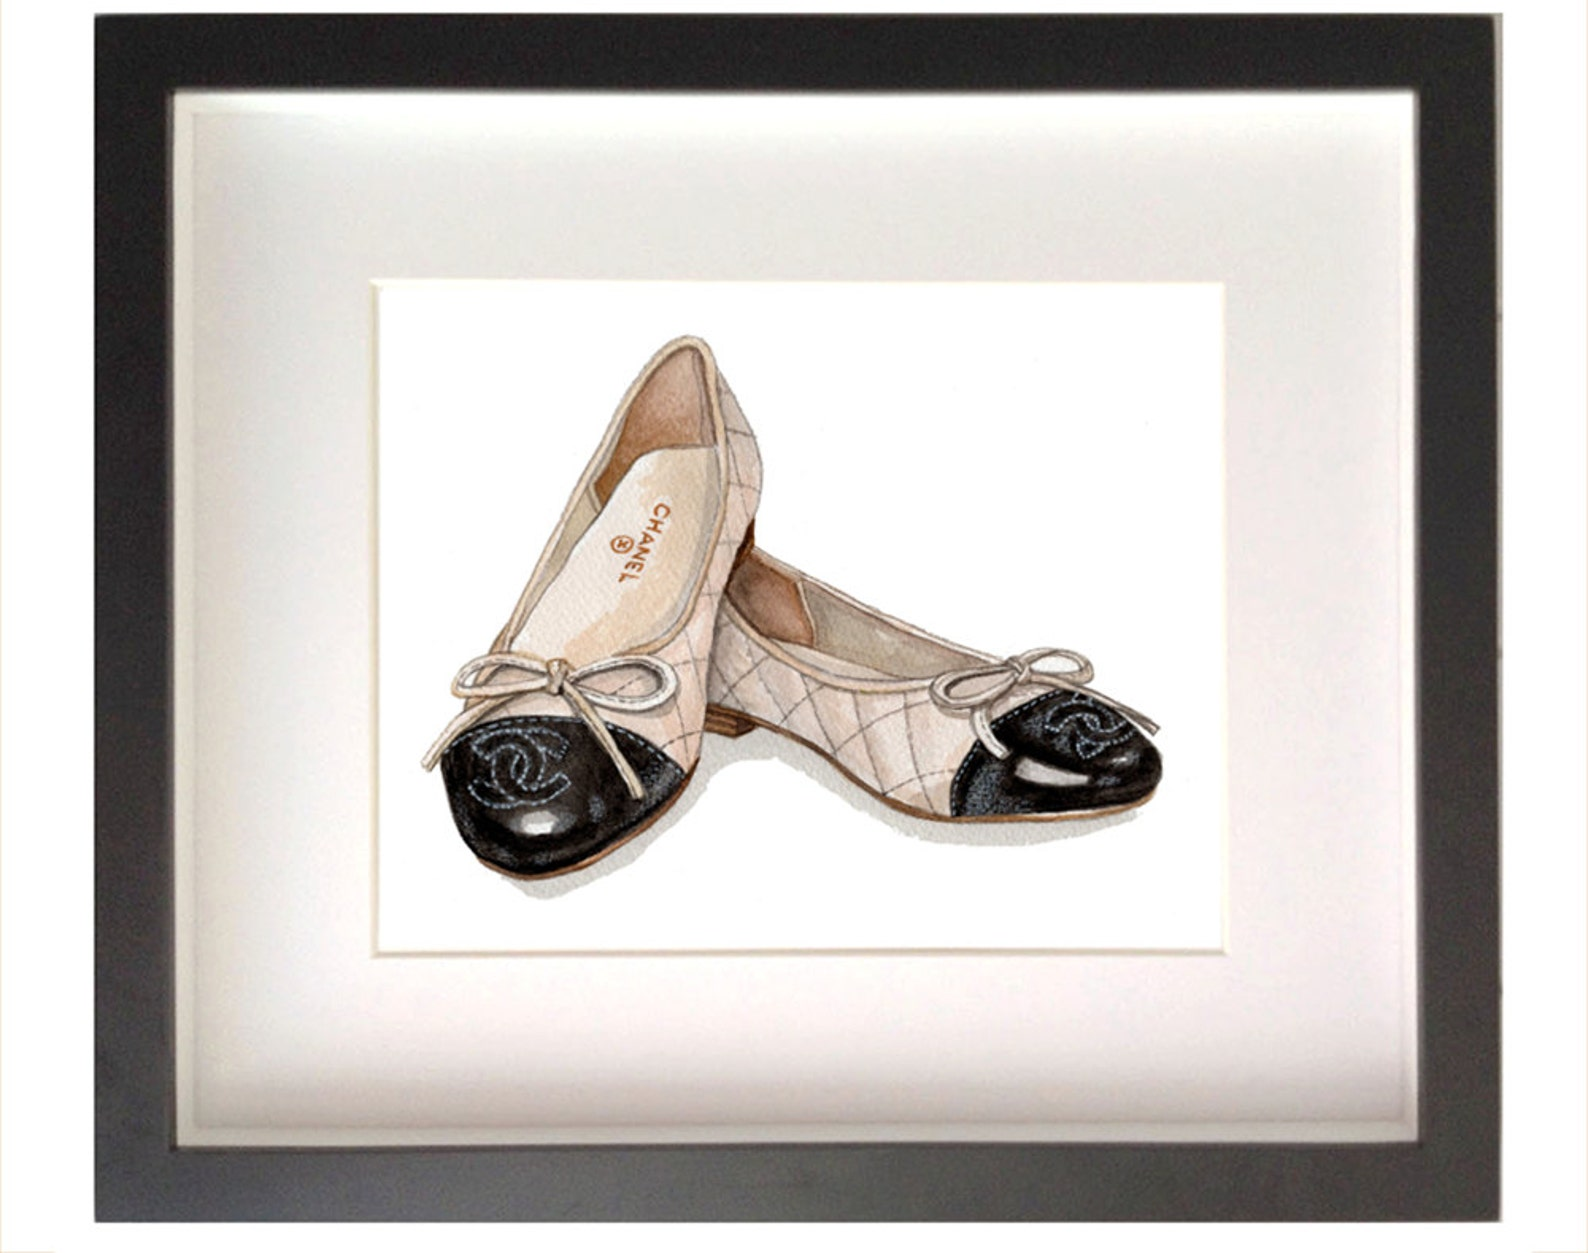 artwork / art print of chanel ballet flats, iconic pair of chanel designer shoe print (not real shoes)